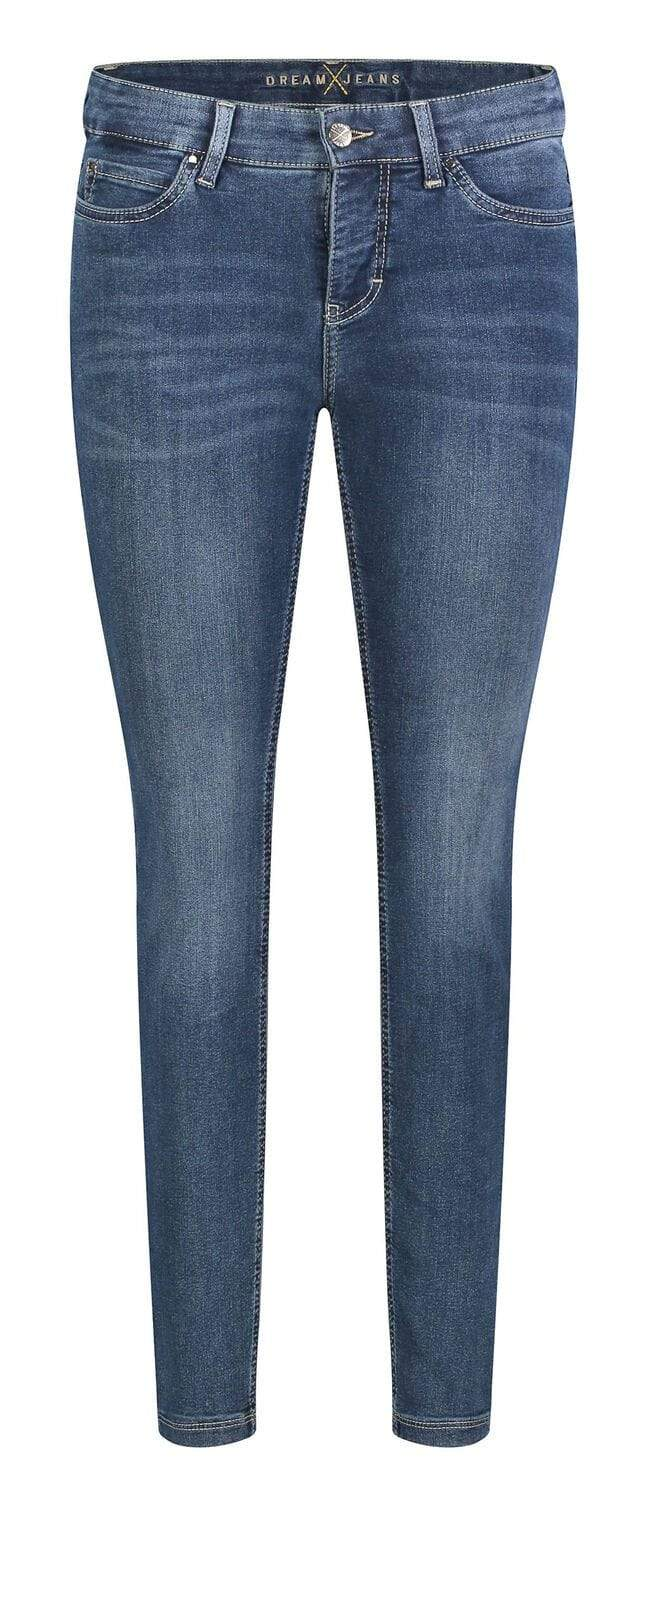 Mac Jeans Jeans Mac Dream Skinny Jeans 5402 D626 Blue Authentic izzi-of-baslow